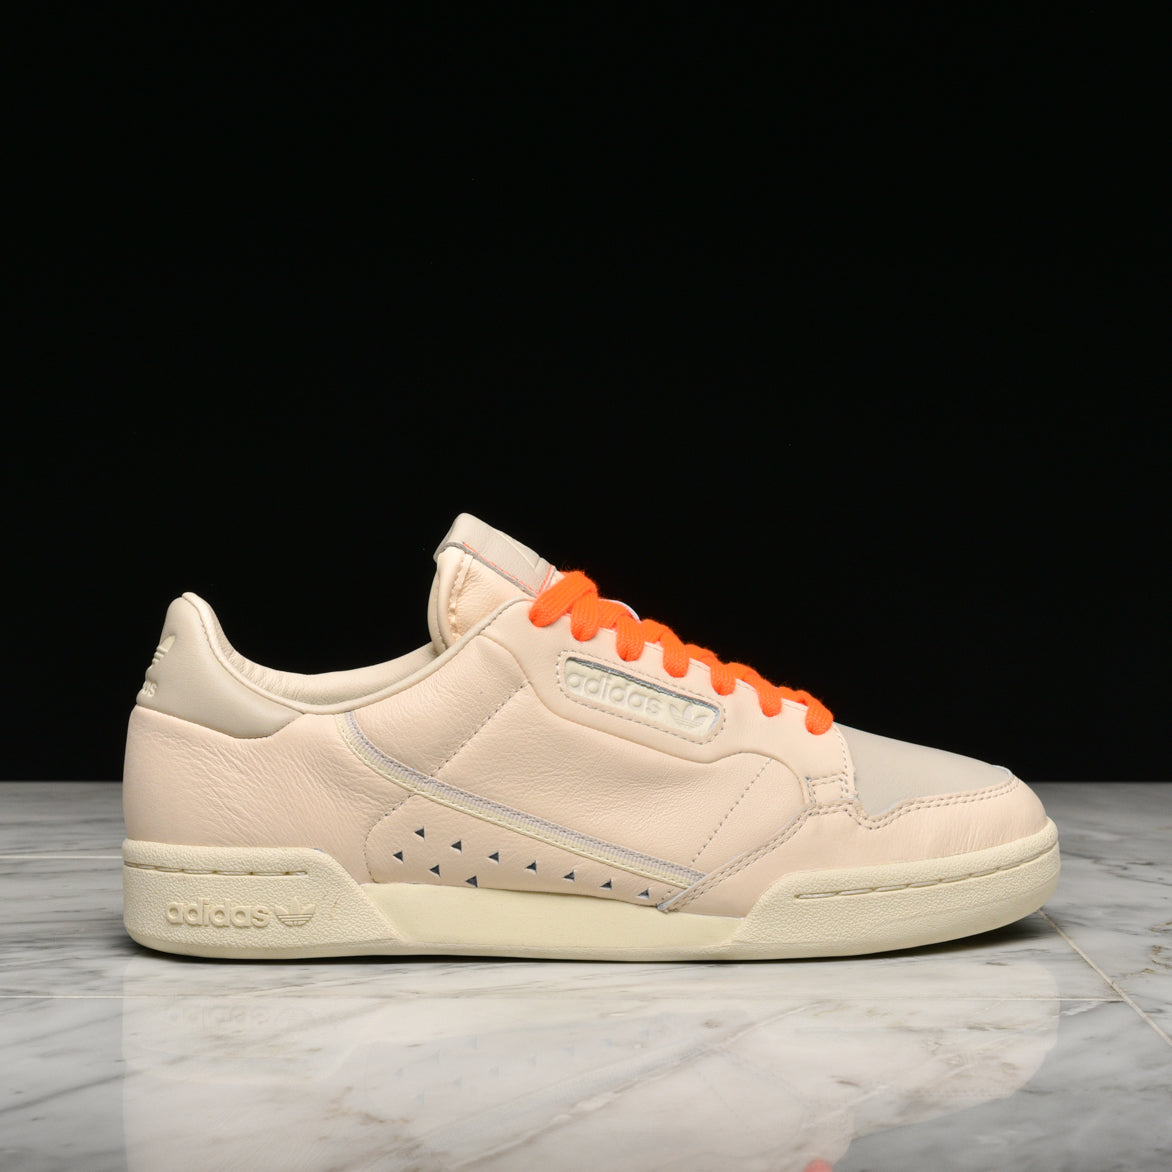 PHARRELL WILLIAMS X ADIDAS CONTINENTAL 80 - ECRU TINT / CREAM WHITE / CLEAR BROWN